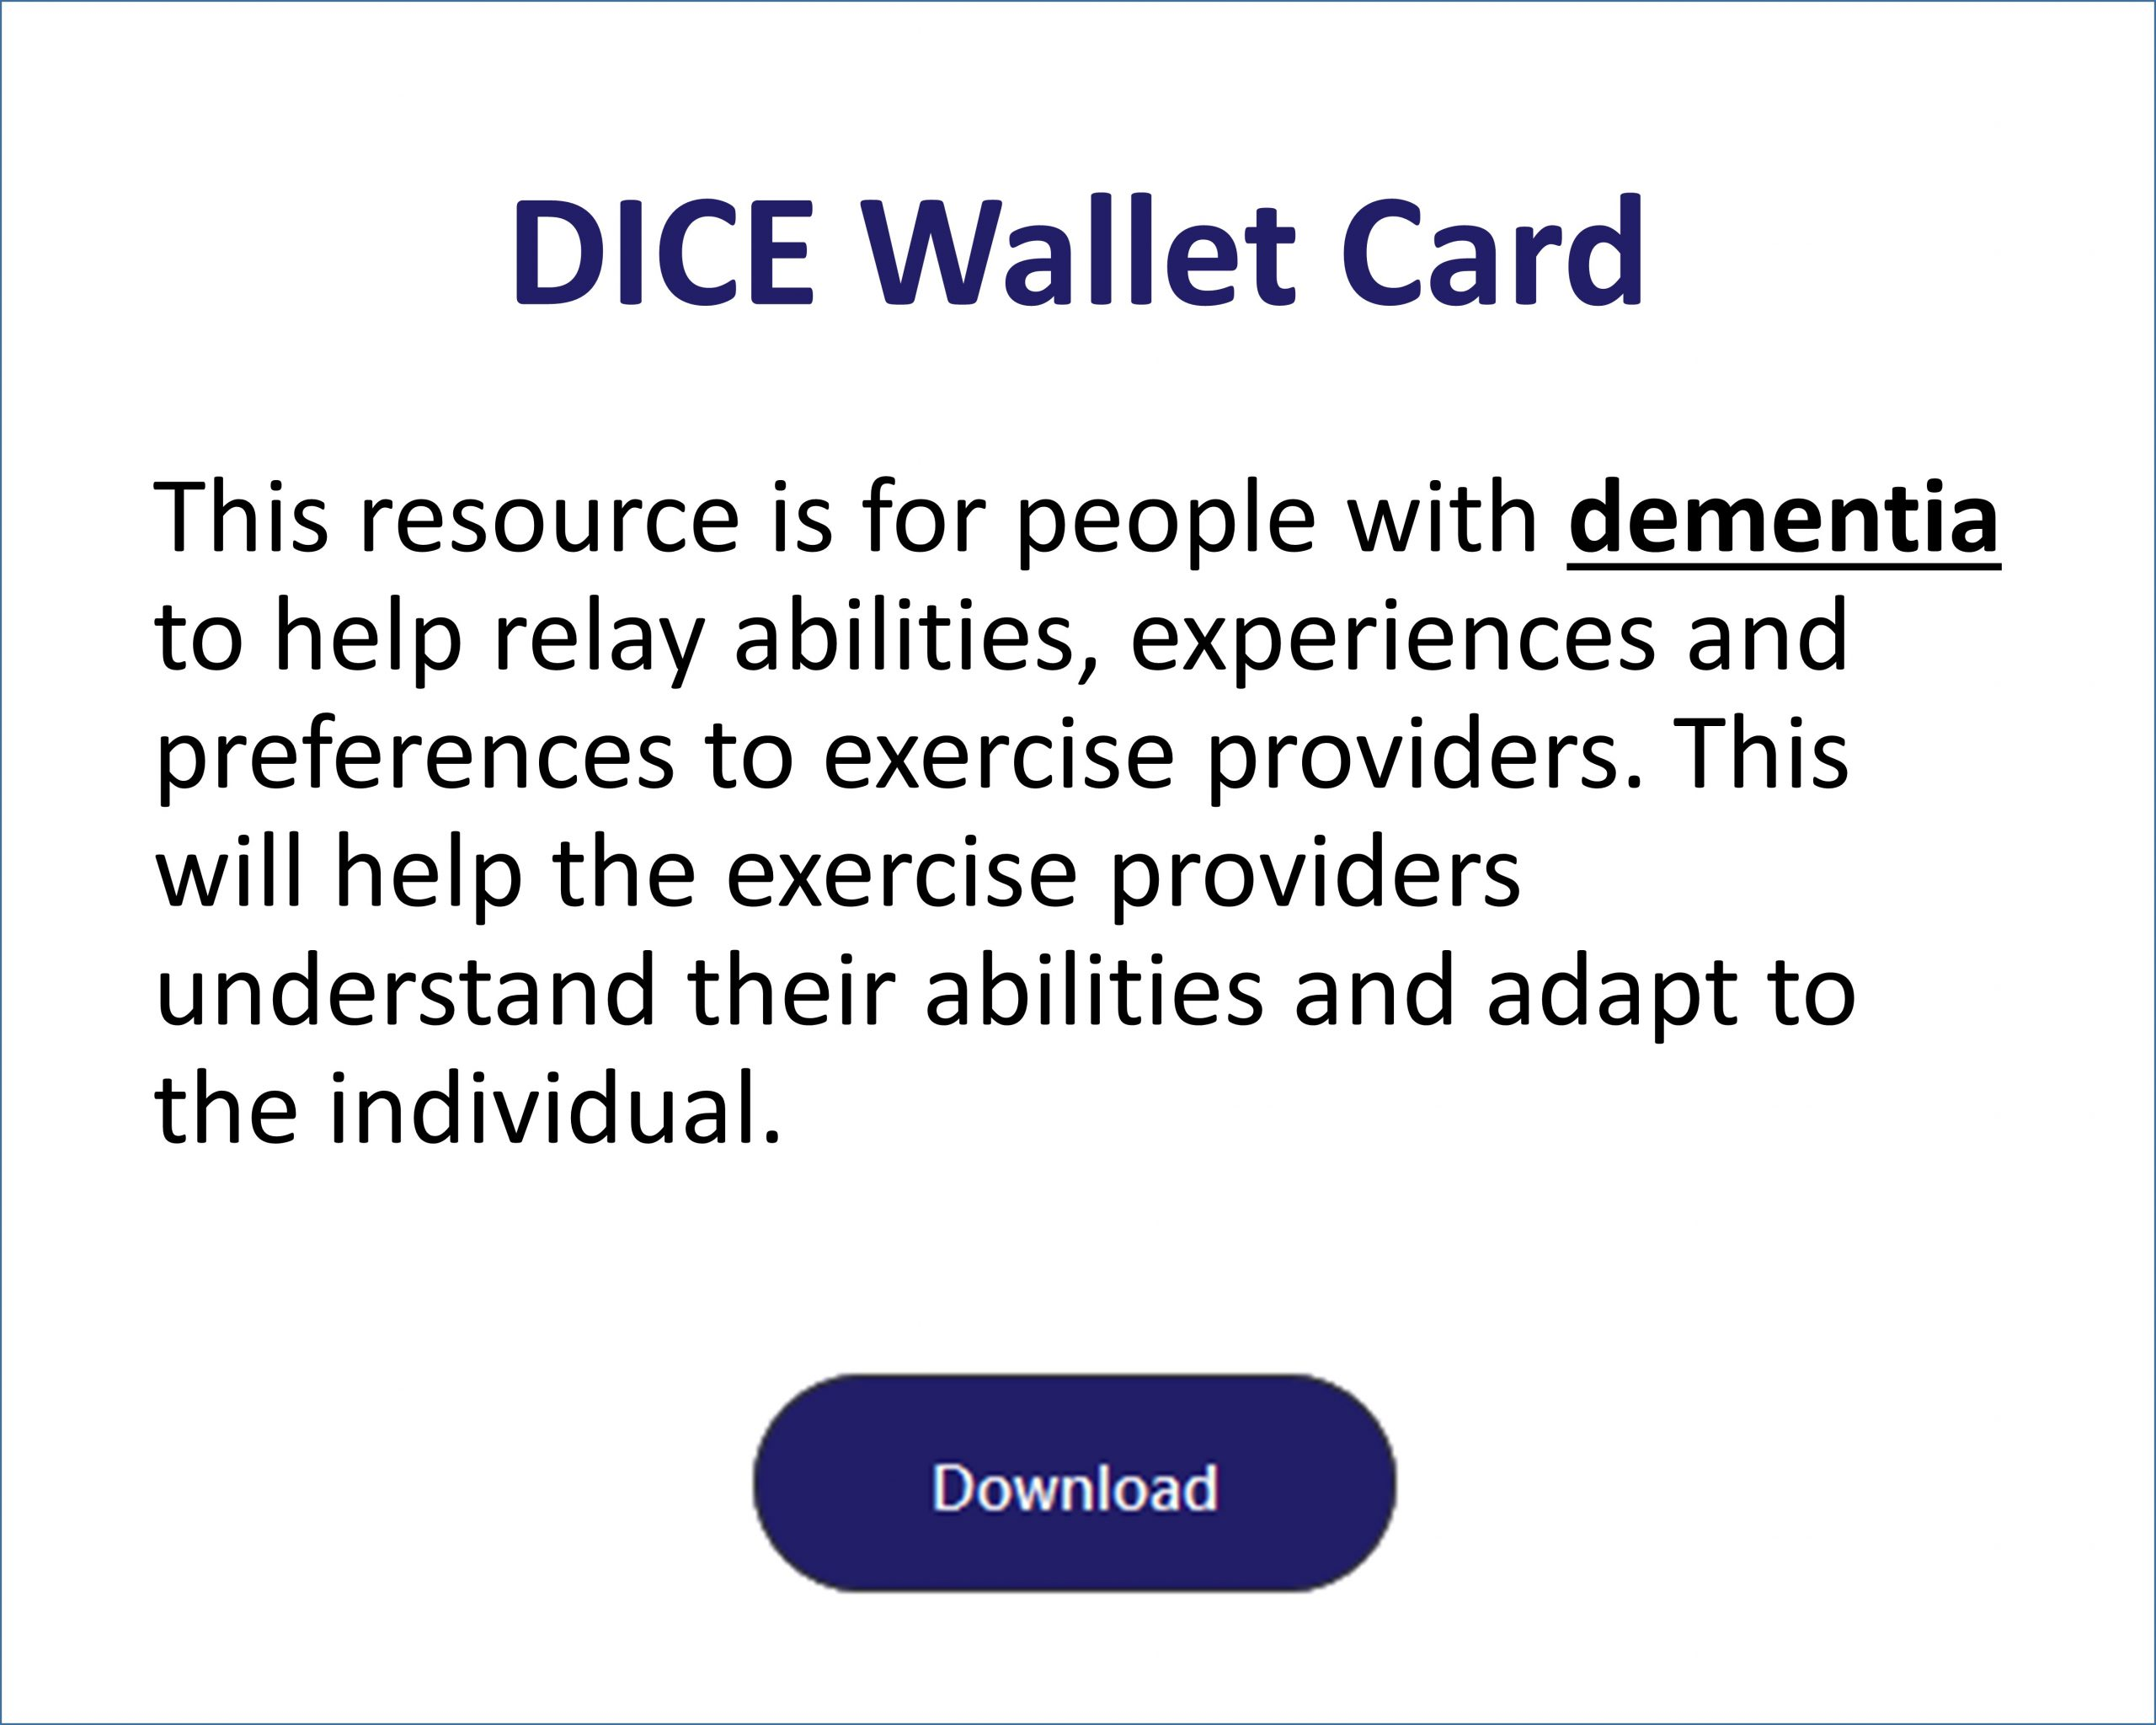 DICE Wallet Card for Dementia